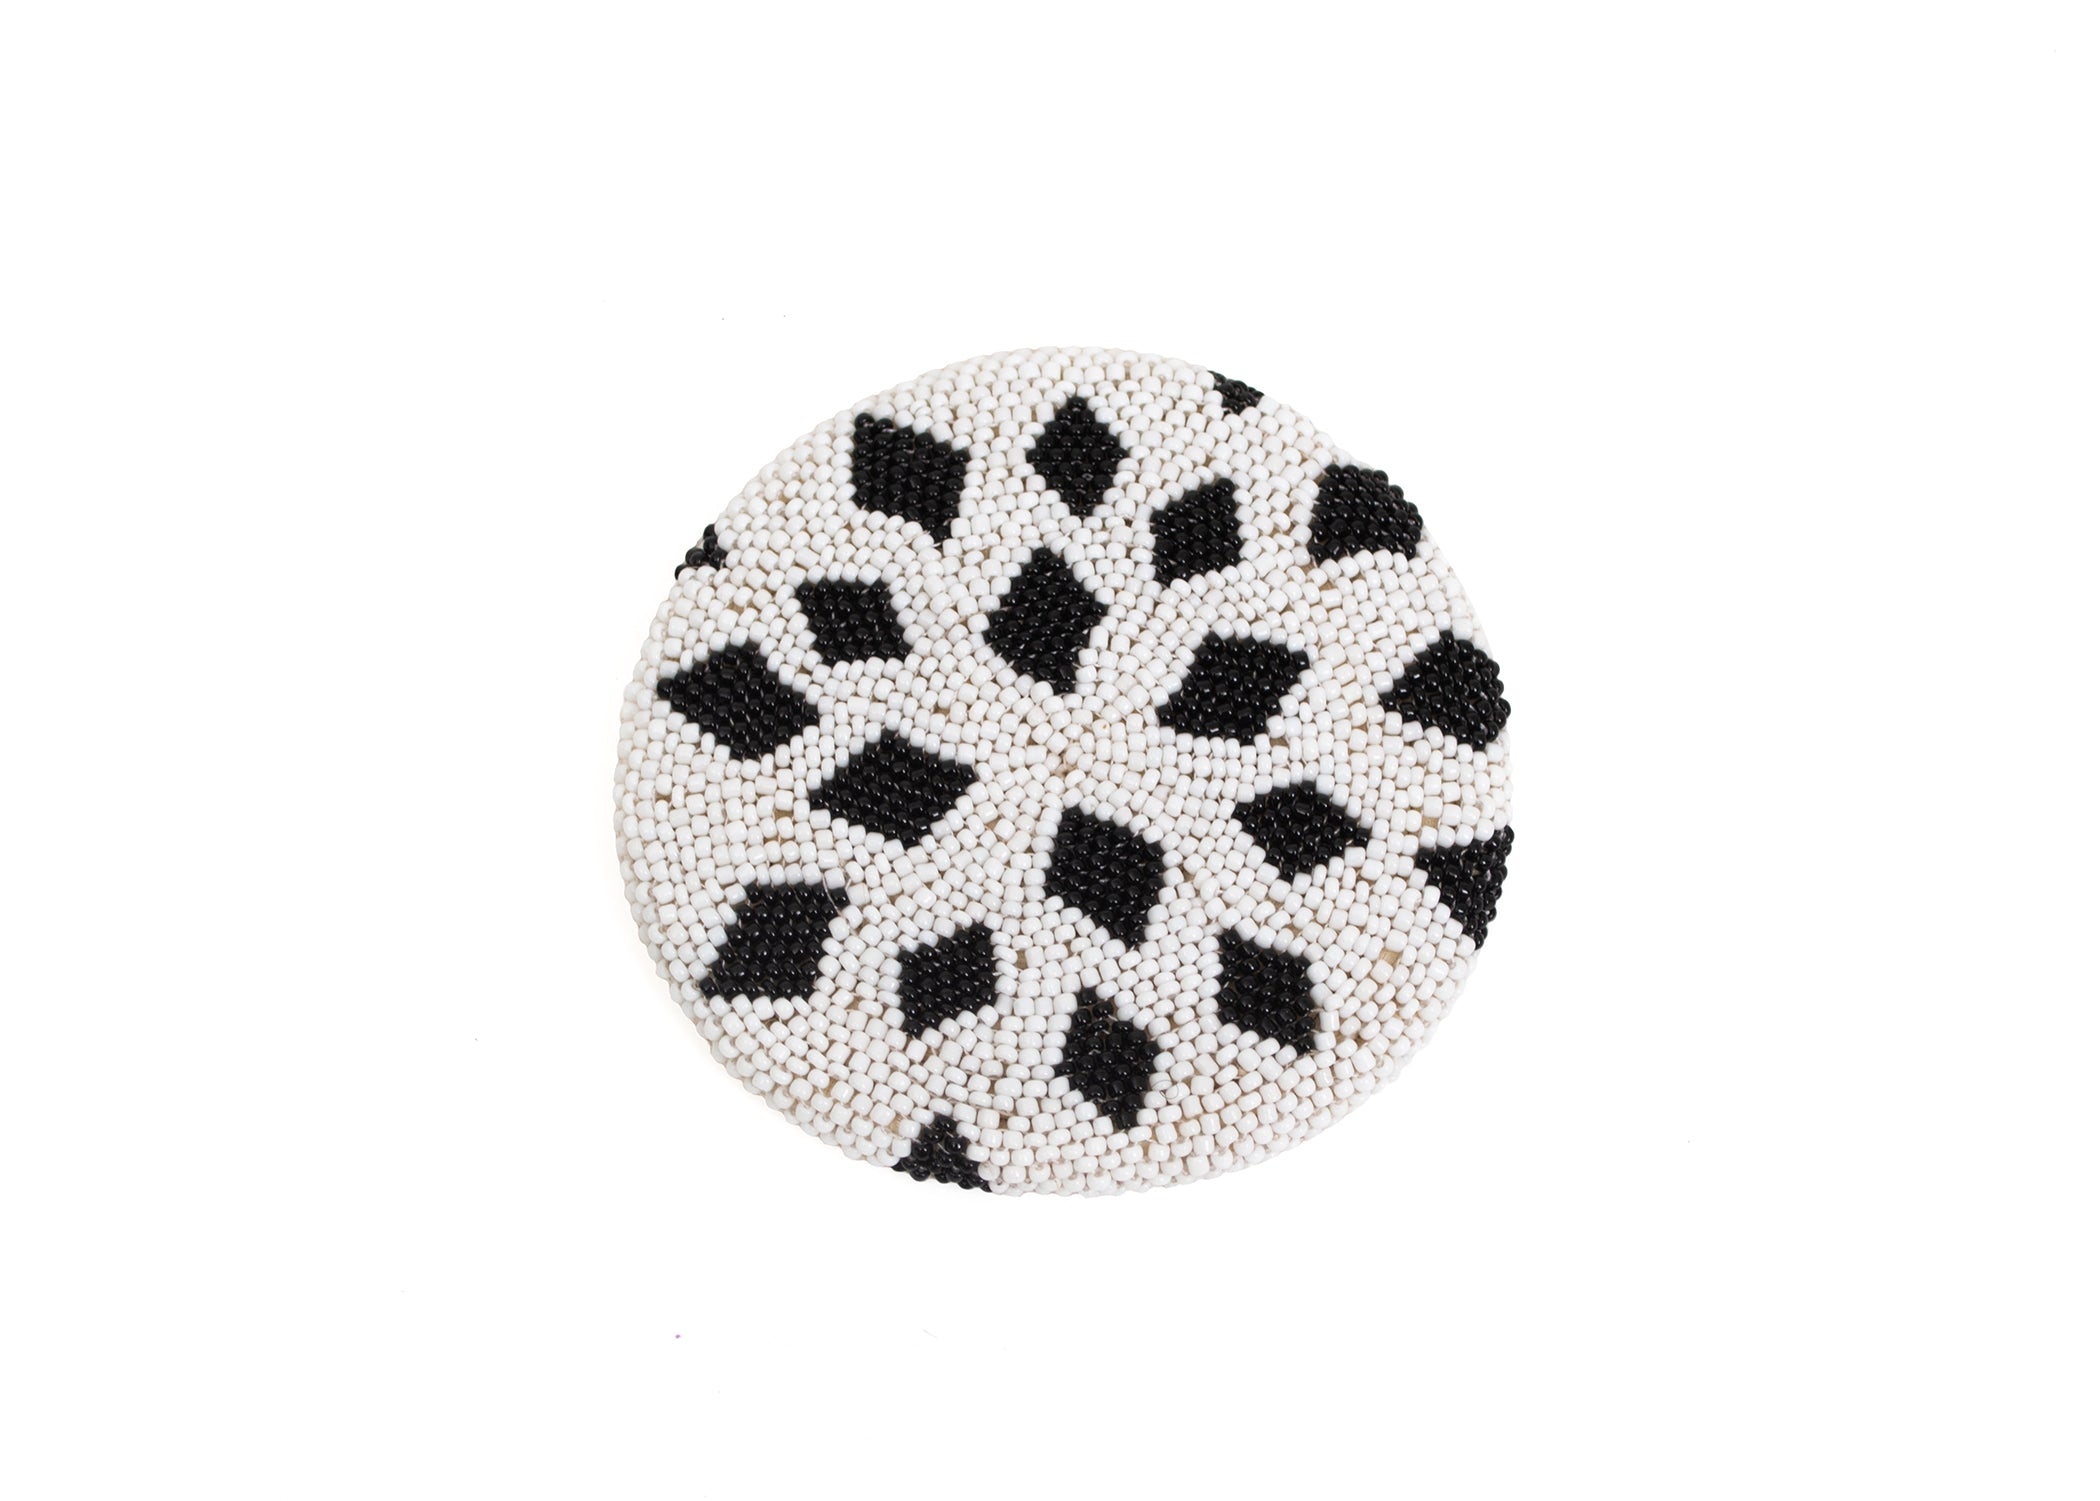 Black Beaded Atelier Coaster 02, Set of 4 - KAZI - Artisan made high quality home decor and wall art